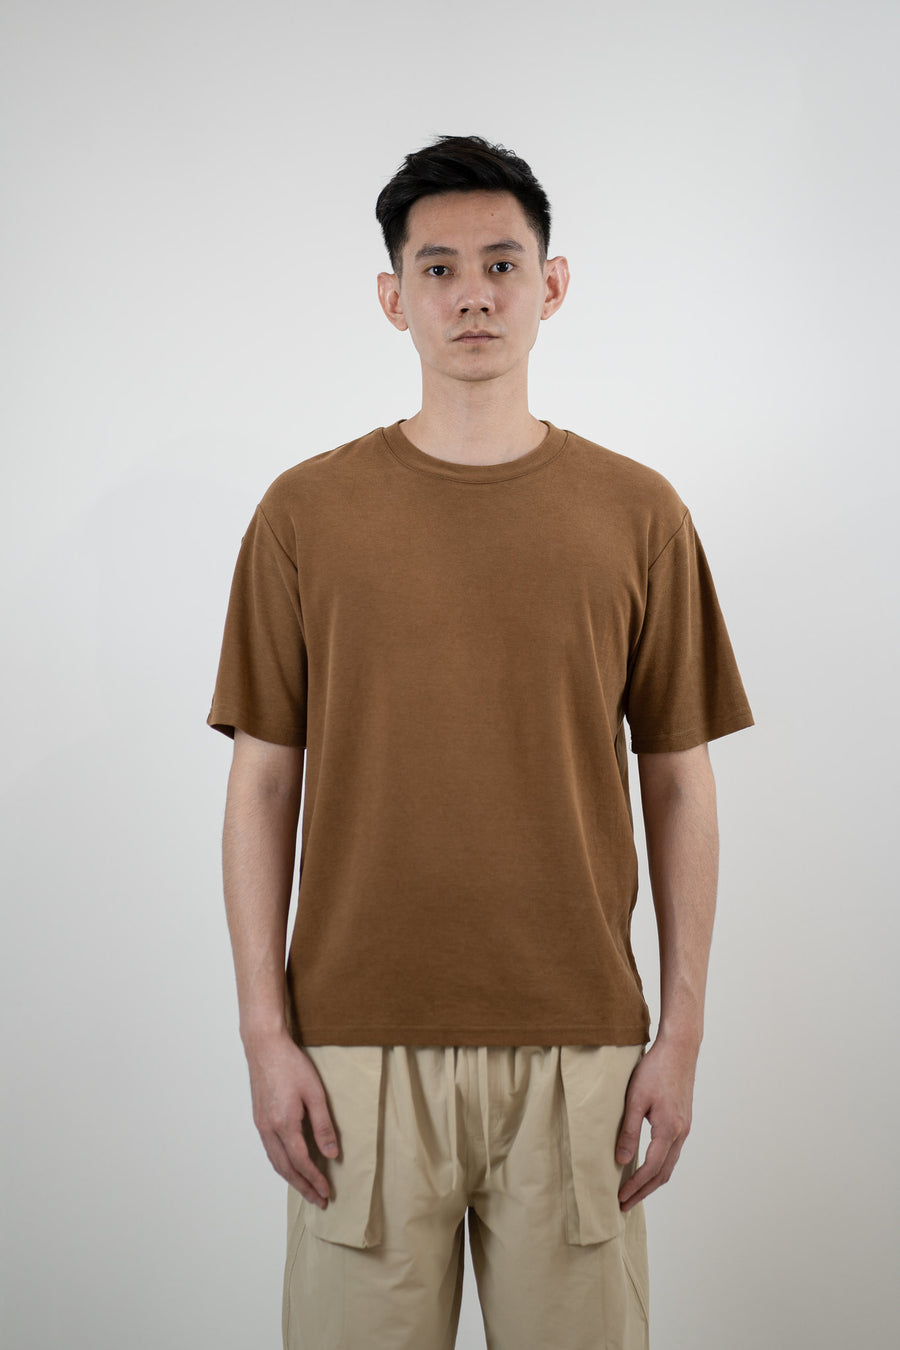 Cupro & Lyocell Double Jersey Tee | Sustainable T-Shirts | Sustainability | Crewneck | Asymmetrical Dropped Shoulder Seam | Relaxed Fit | Burnt Orange